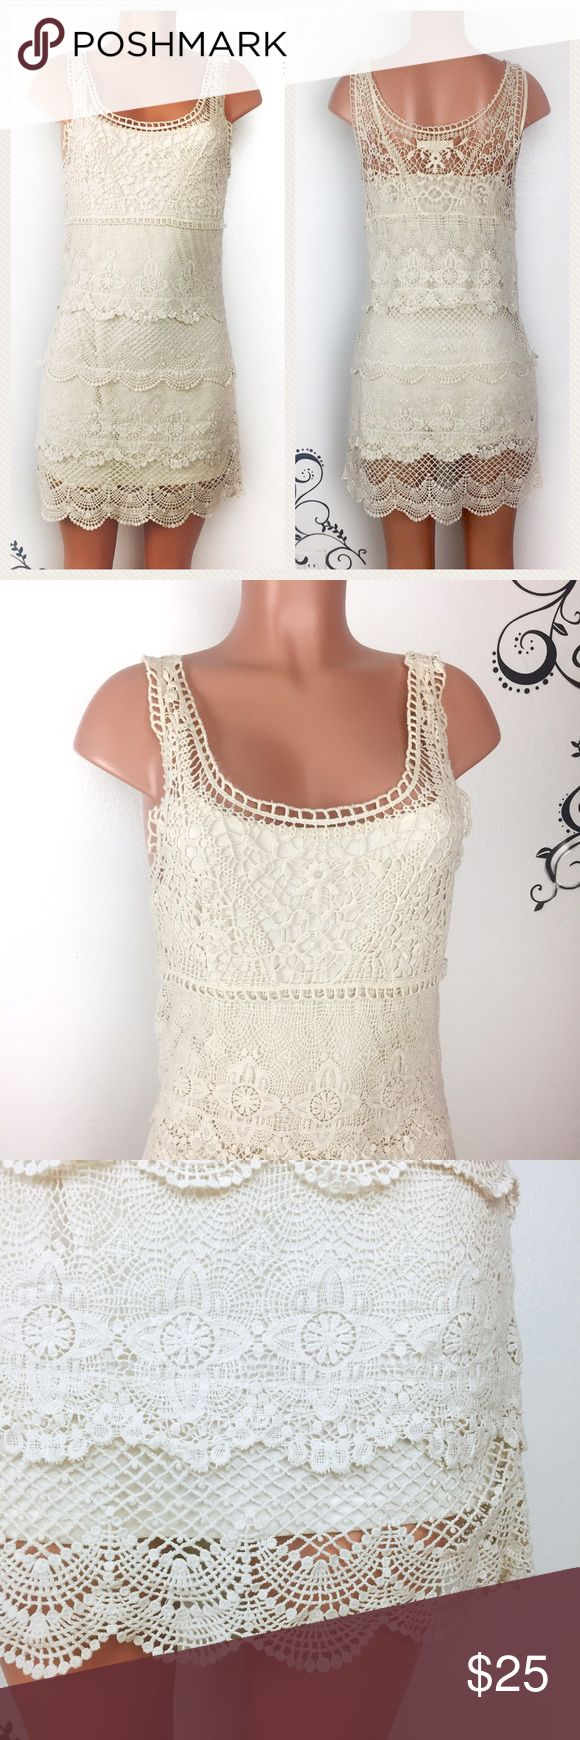 "American Eagle cream beige crochet mini dress Pretty cream beige colored mini dress American Eagle Outfitters.  Great for special occasions and night outs.  Removable slip dress, outer shell can be used as beach over dress too.   Condition: worn a few times, no holes or stains found, in good condition overall  Size: Small Petite Chest: 17 inches across Length: 34.5"" Fabric: cotton  🚫trade, open to offer 🙂 American Eagle Outfitters Dresses Mini"